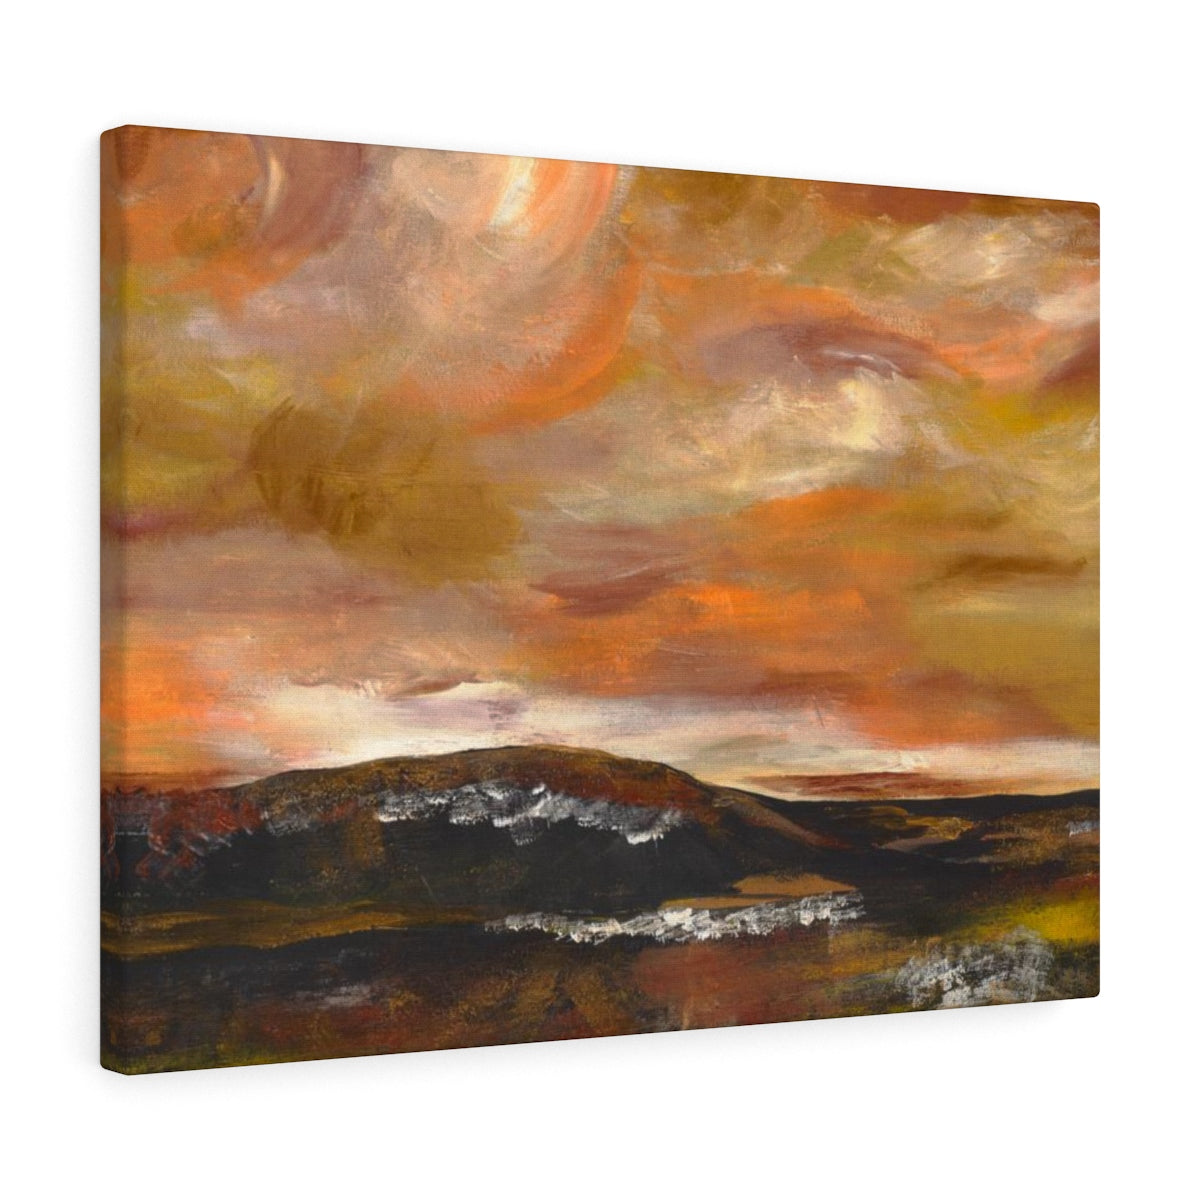 "GOLDEN VALLEY  Canvas Gallery Wraps  14"" x 11"""